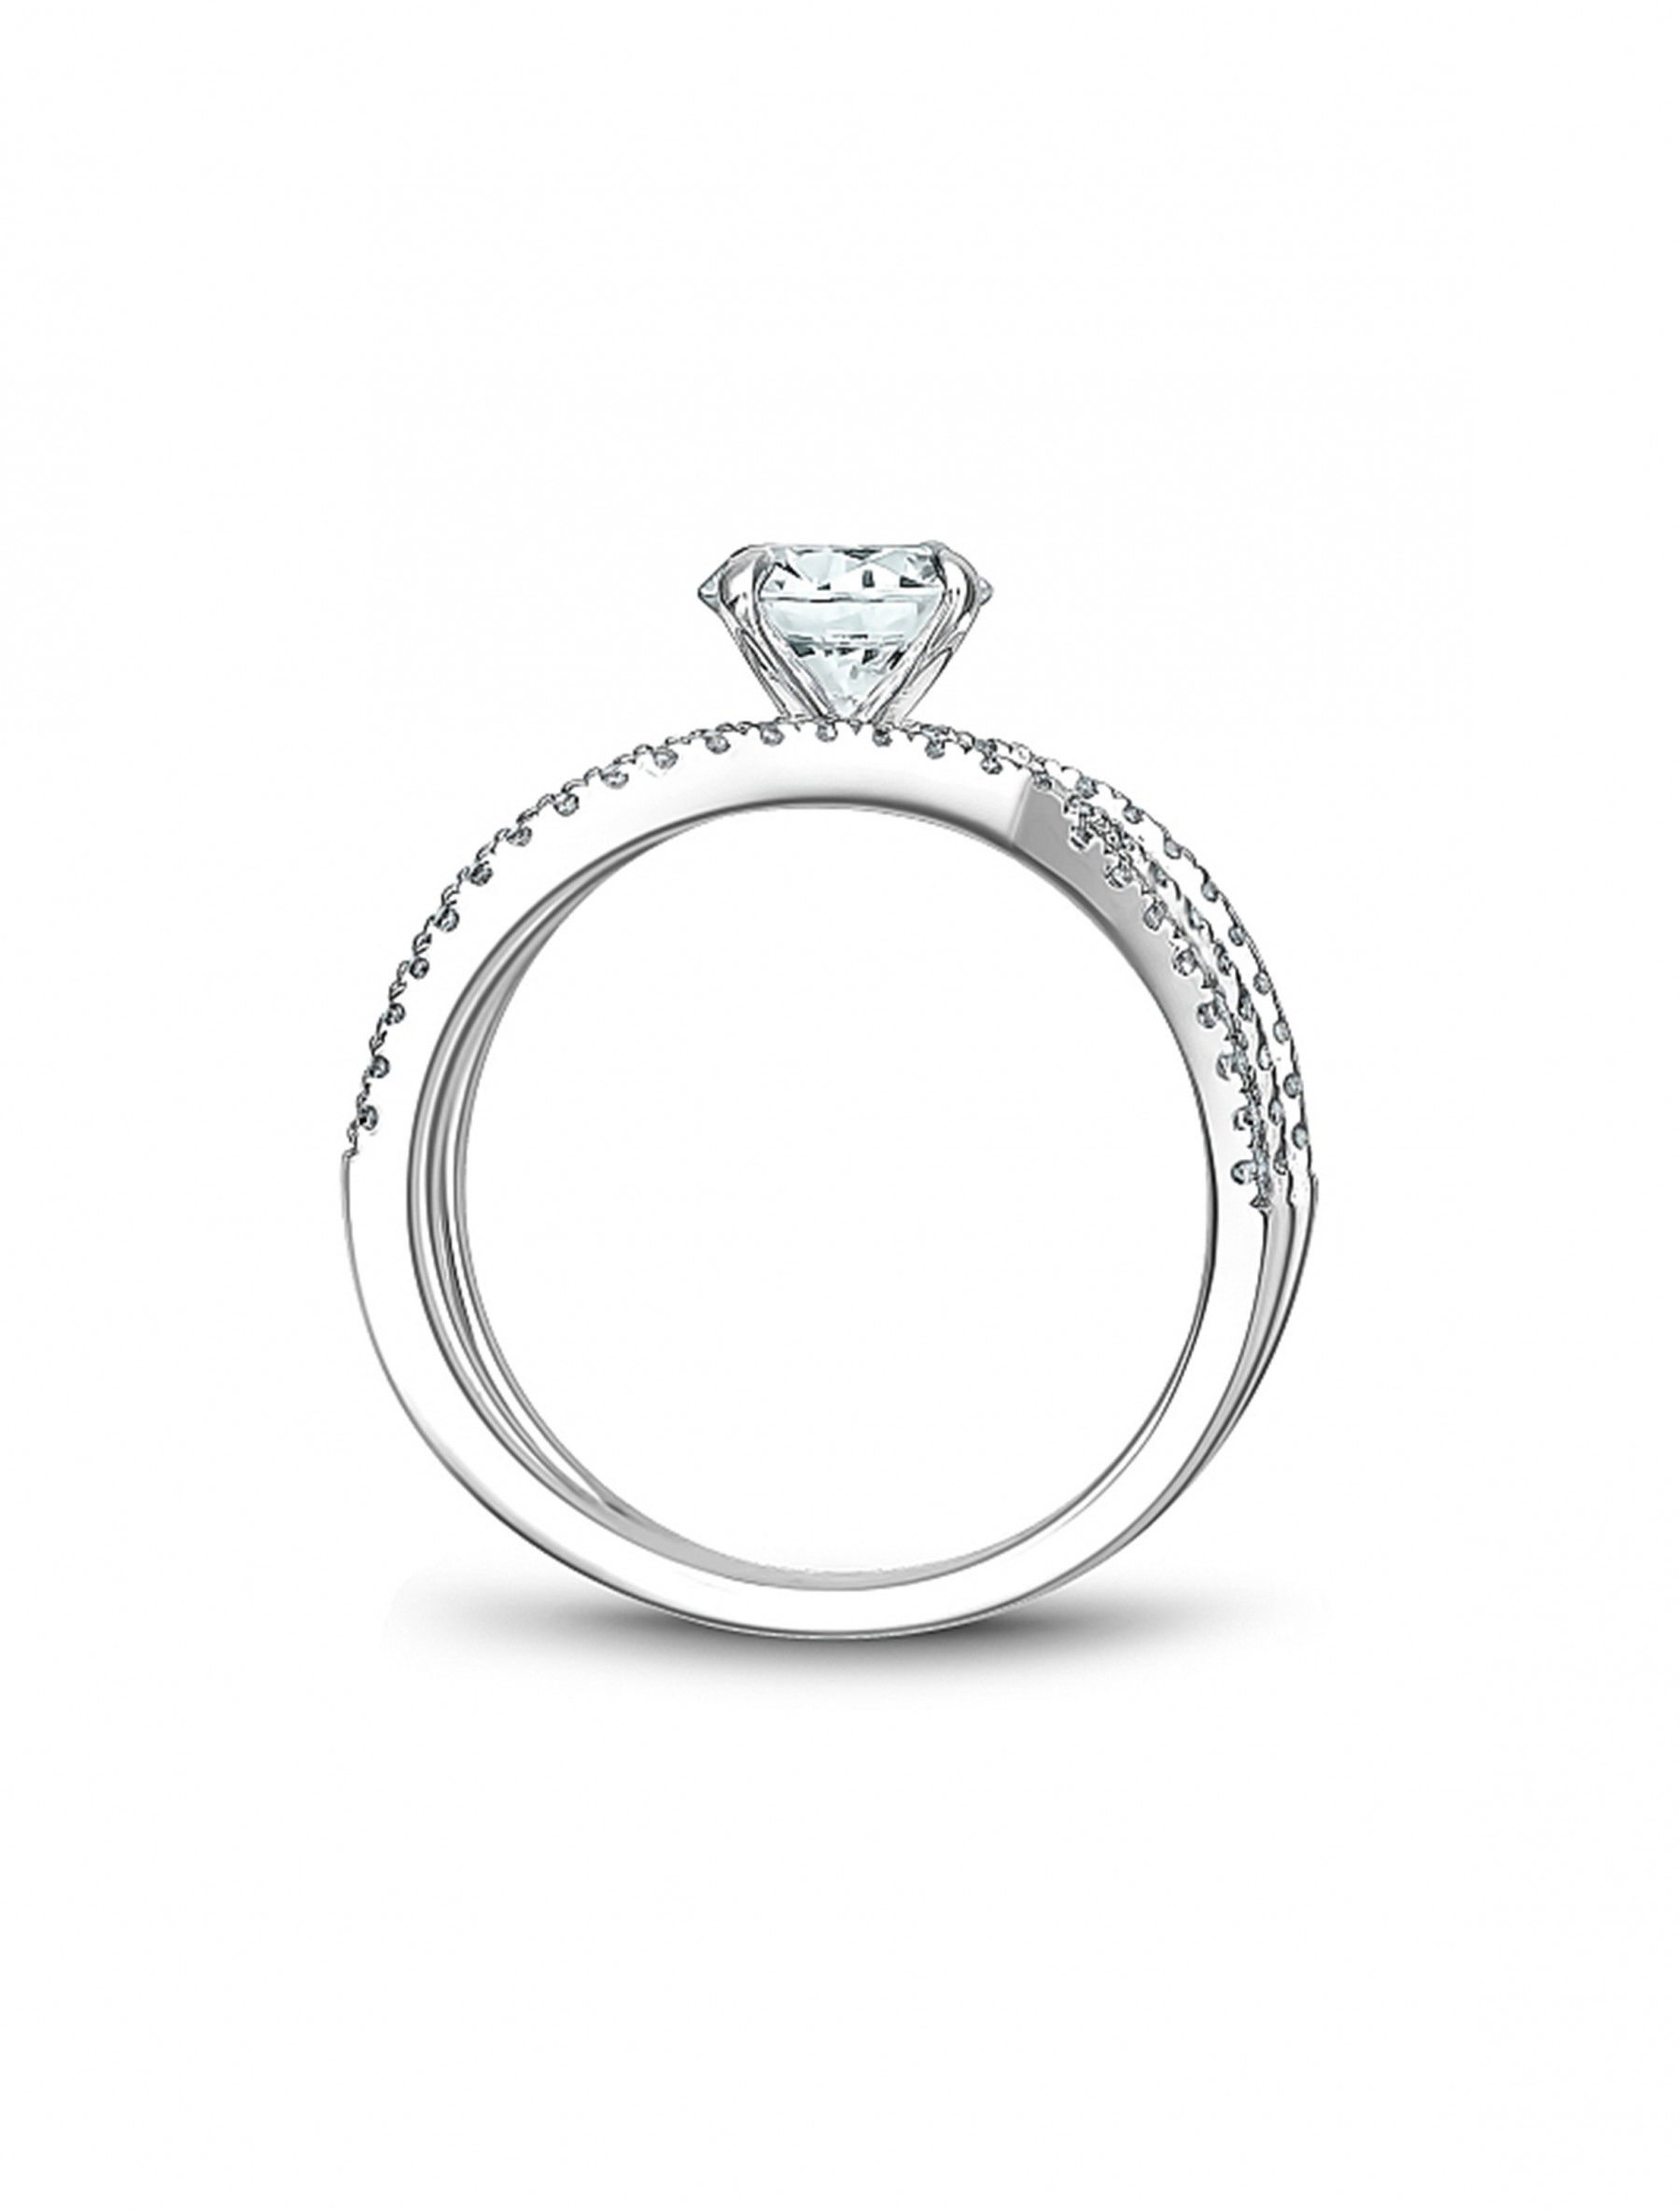 Noam Carver Round Pave Diamond Crossover Engagement Ring Setting side view